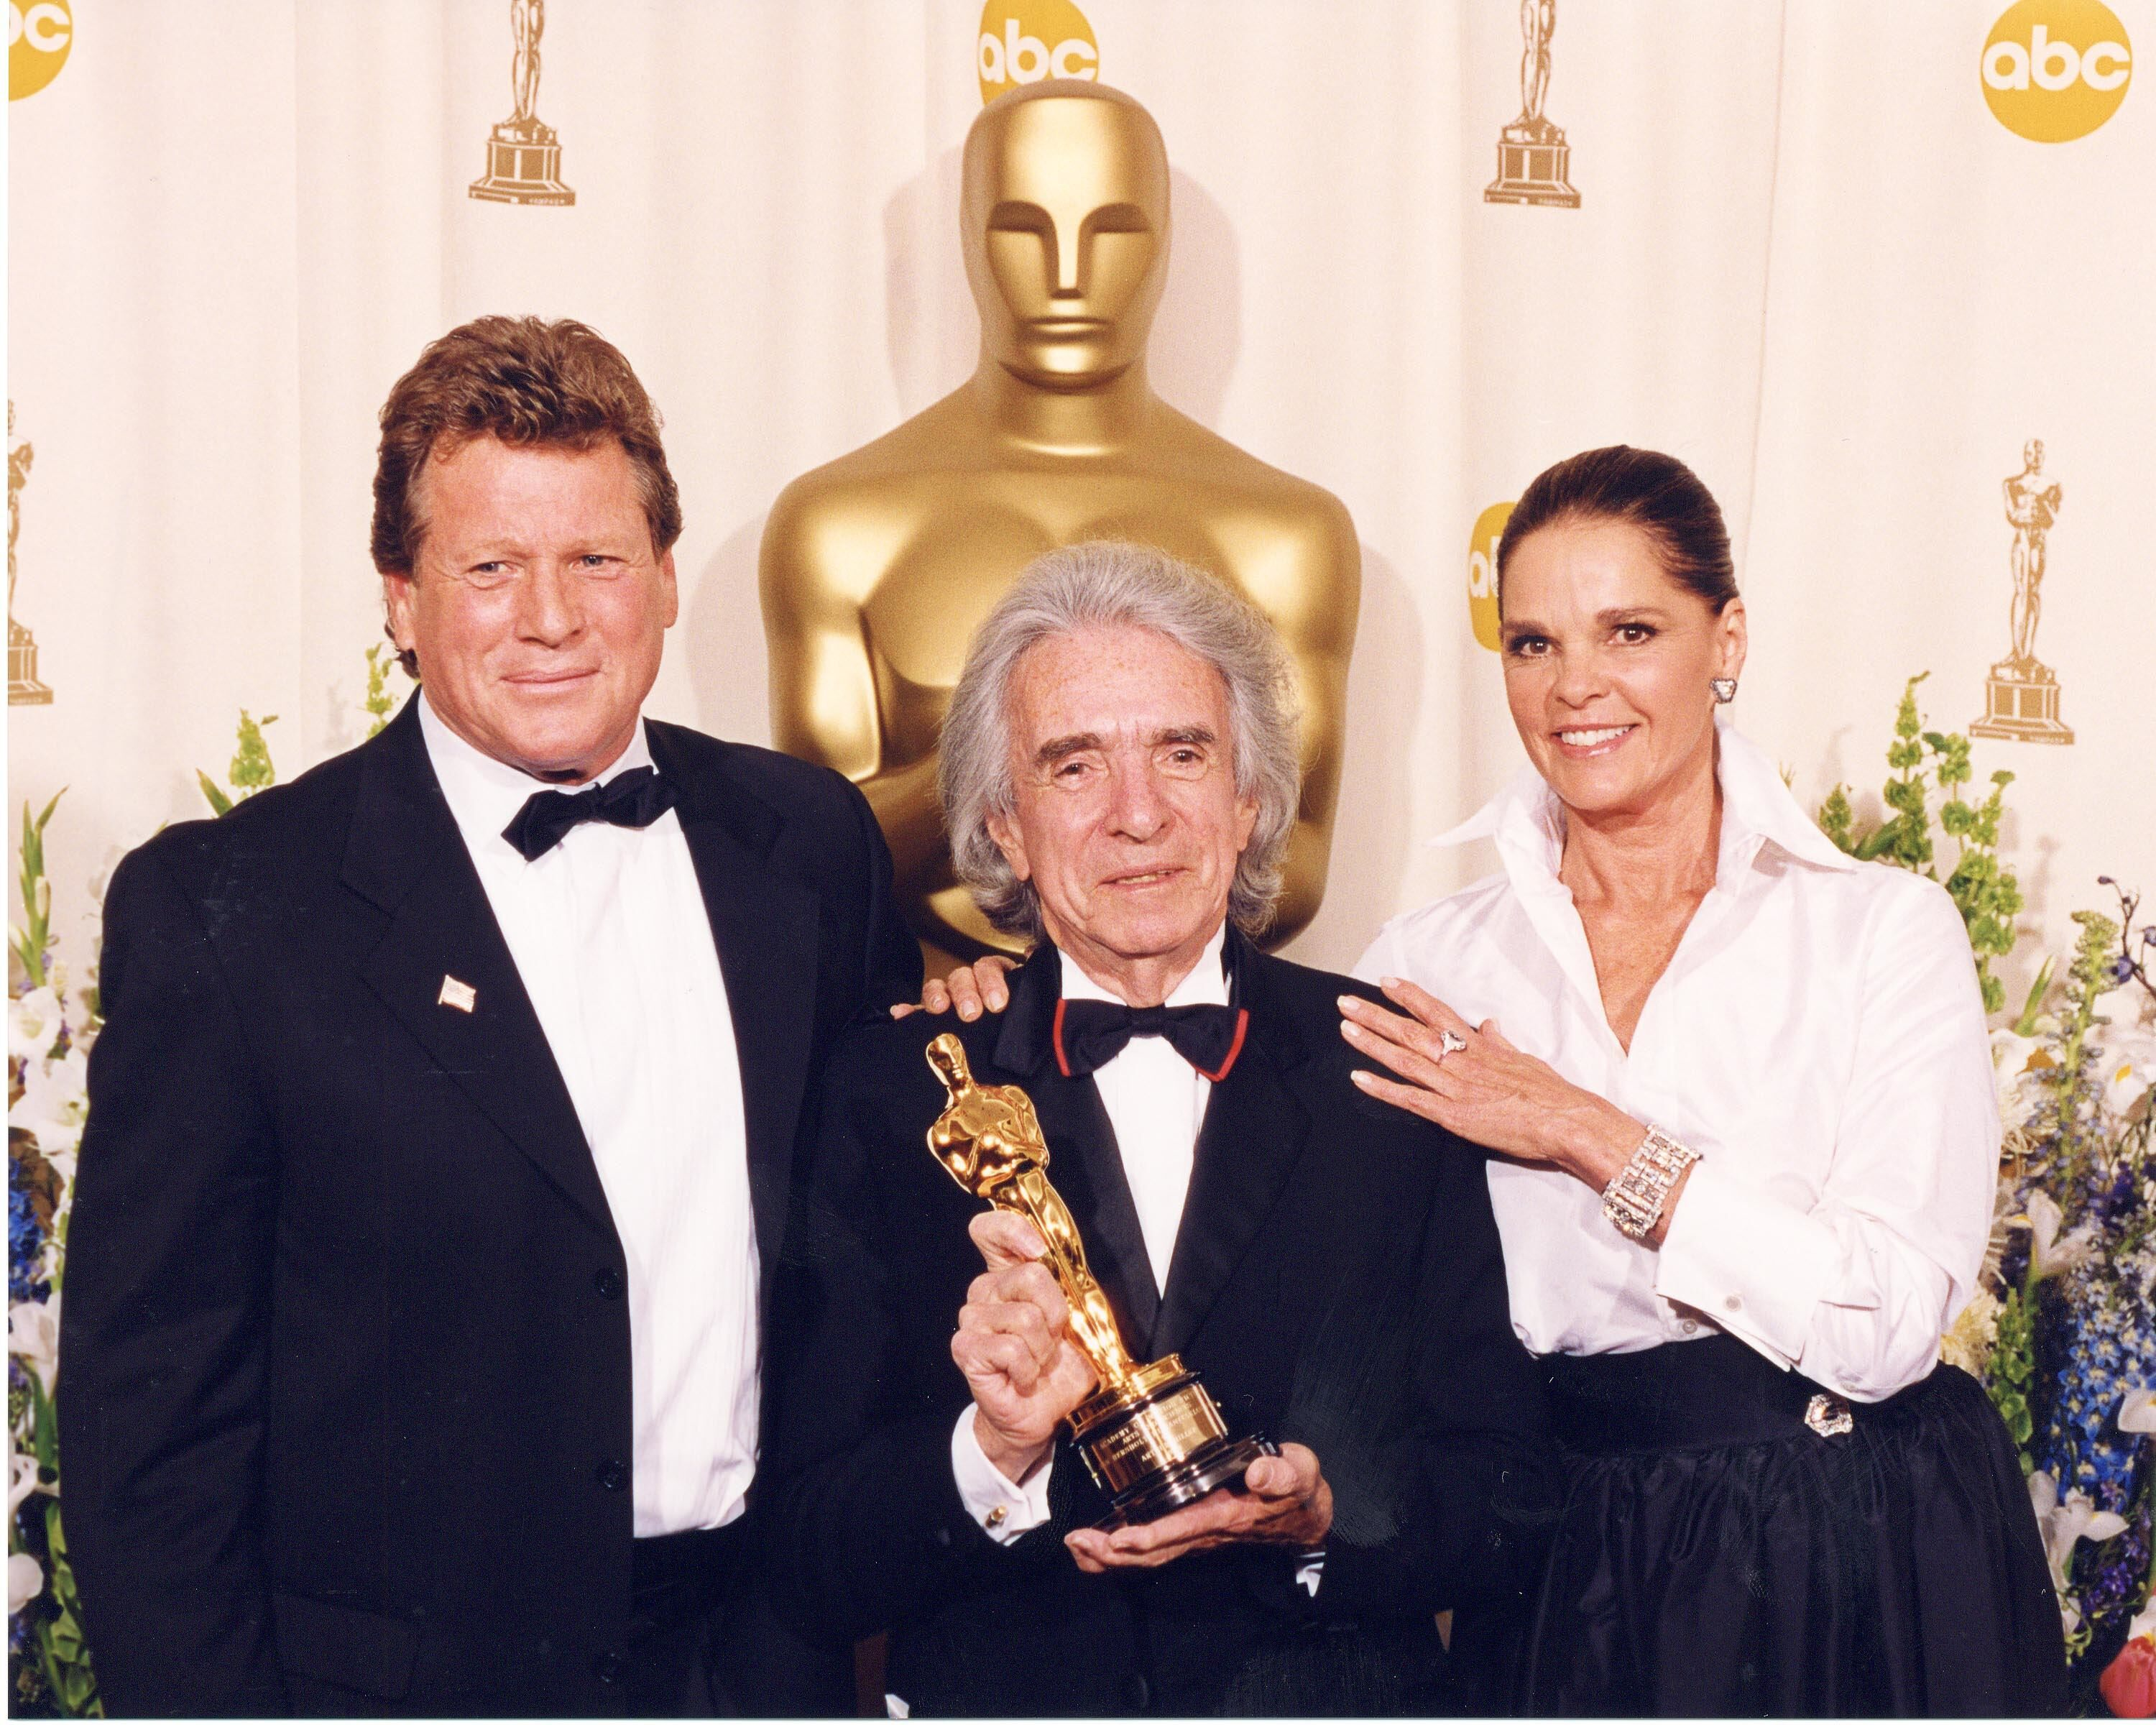 Jean Hersholt Humanitarian Award winner Arthur Hiller with presenters Ryan O'Neal and Ali MacGraw.